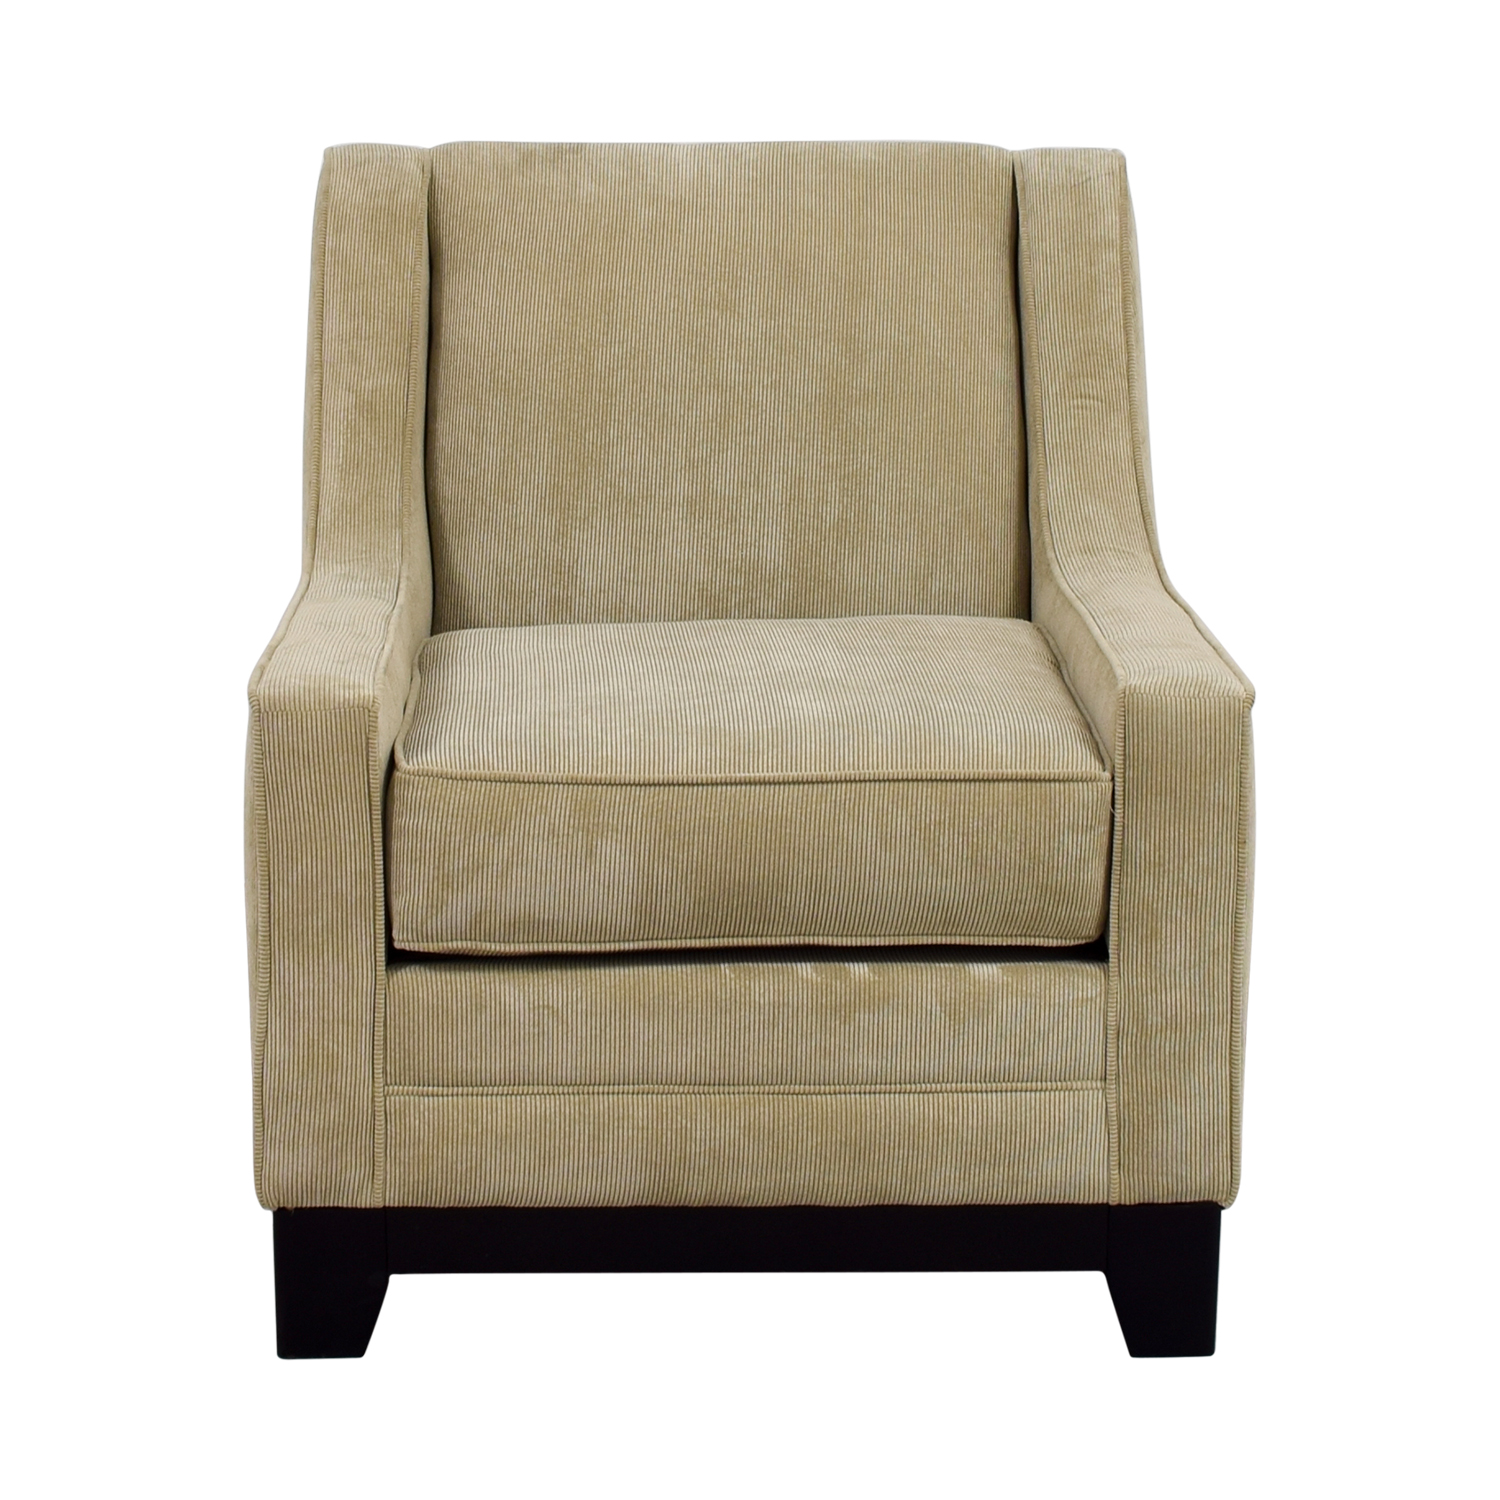 shop May Furniture Tan Corduroy Accent Chair May Furniture Chairs